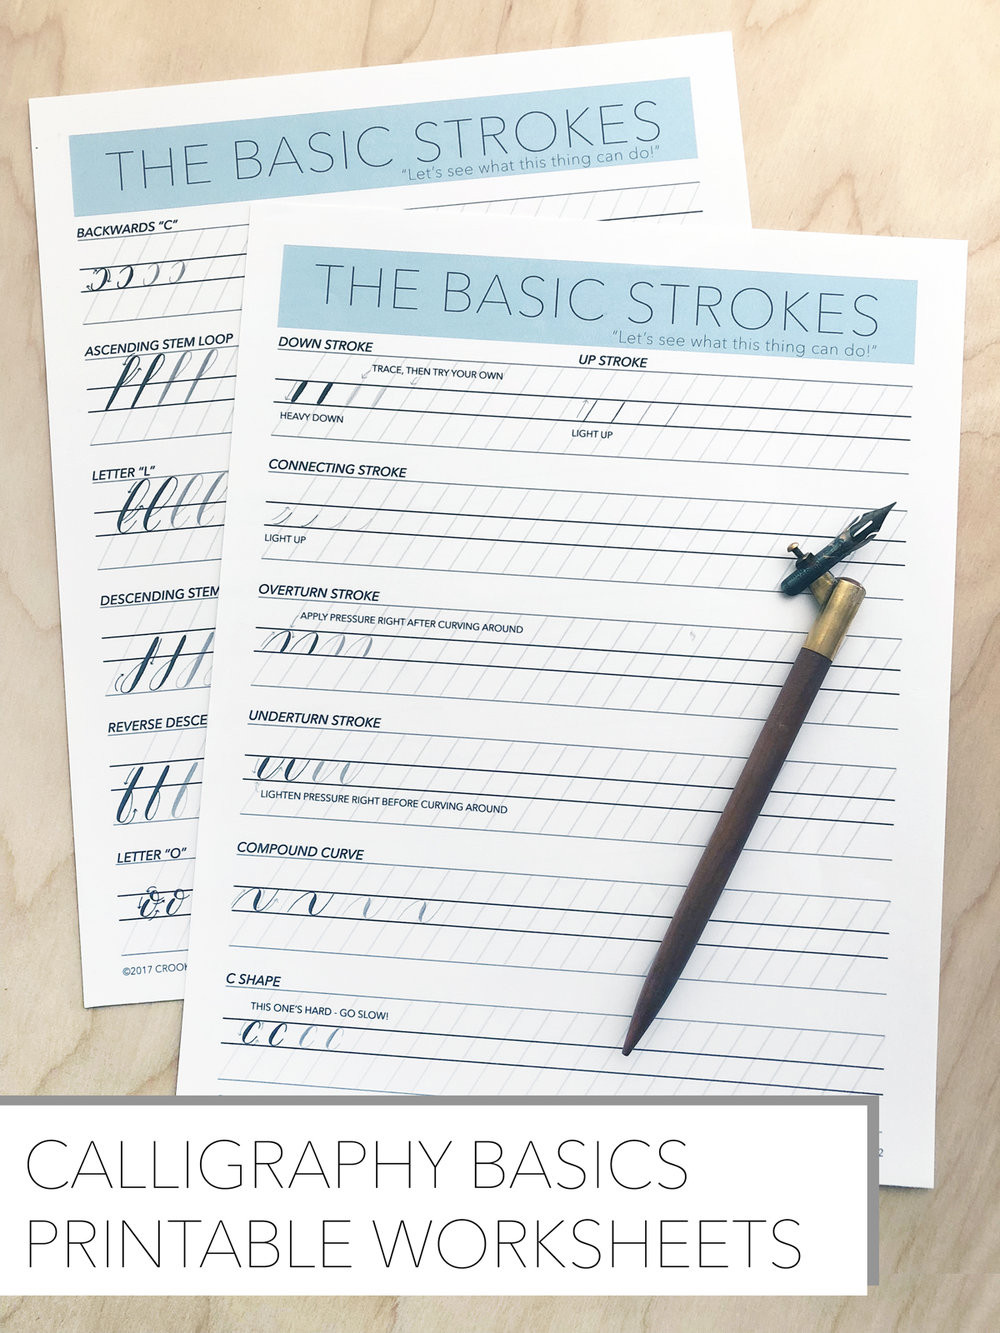 Free Calligraphy Worksheets Printable Free Basics Worksheets — Crooked Calligraphy